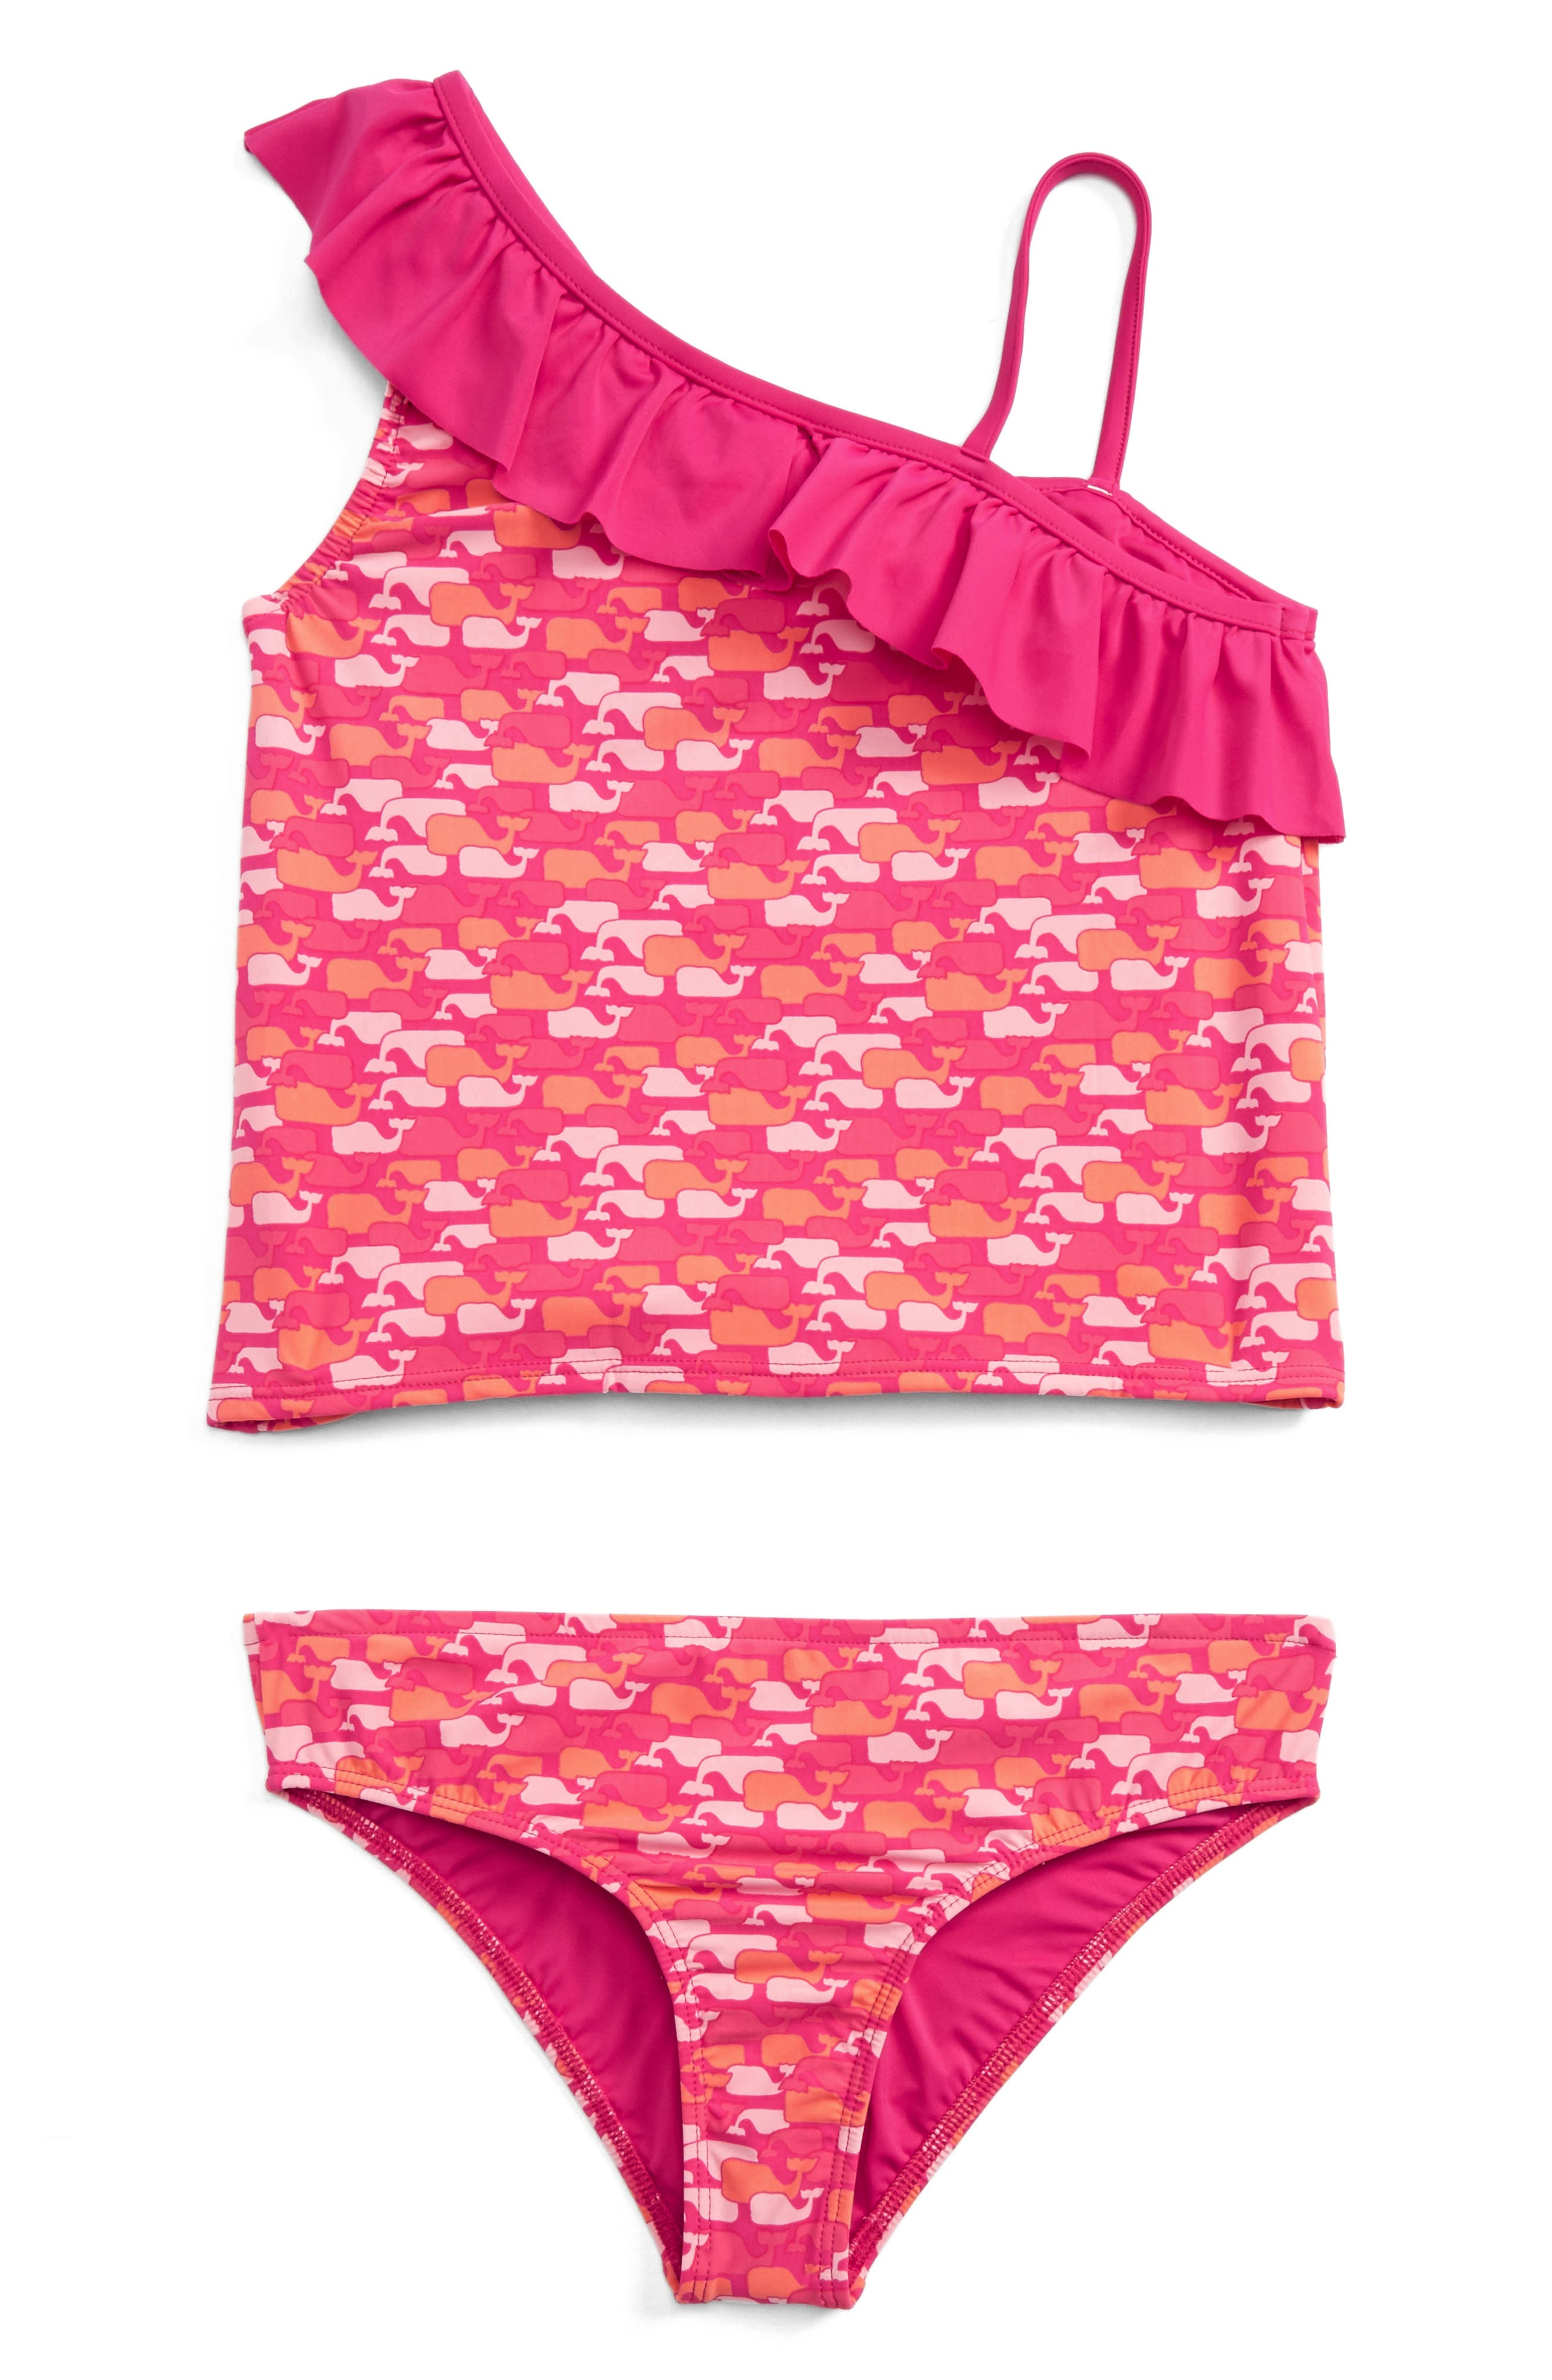 VINEYARD VINES Whale Outline Two-Piece Tankini Swimsuit